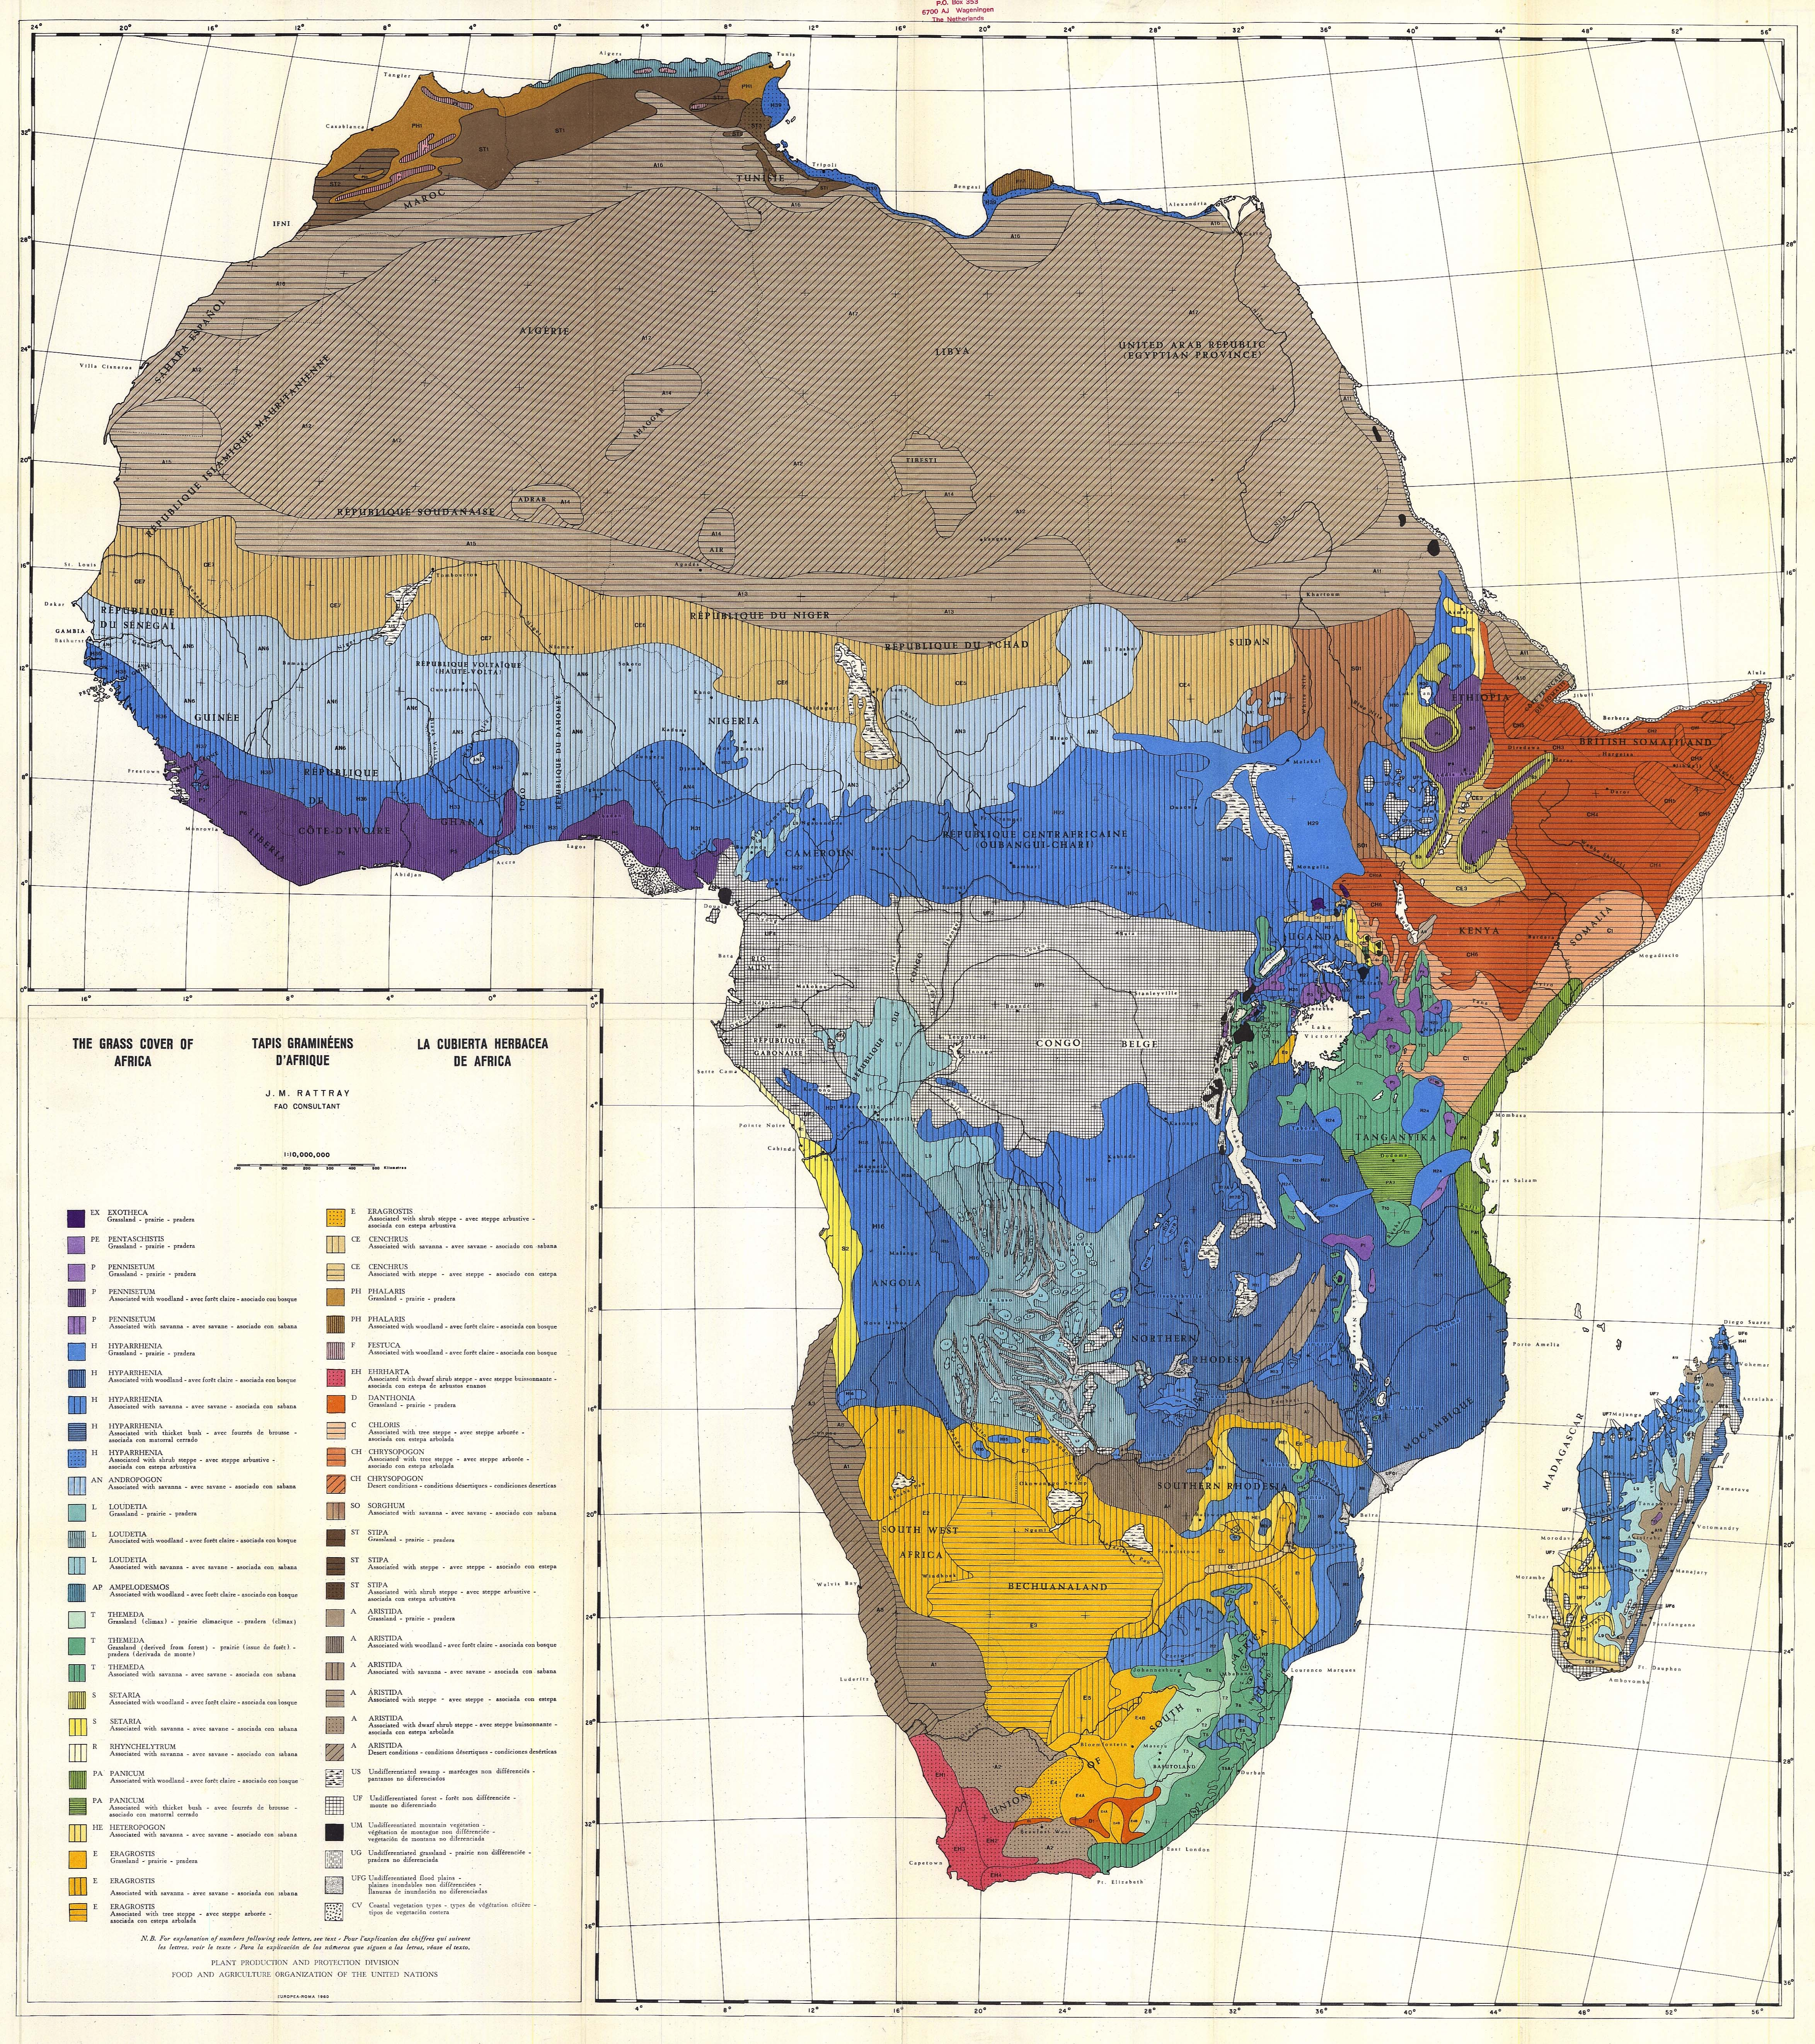 The Grass Cover of Africa 1960